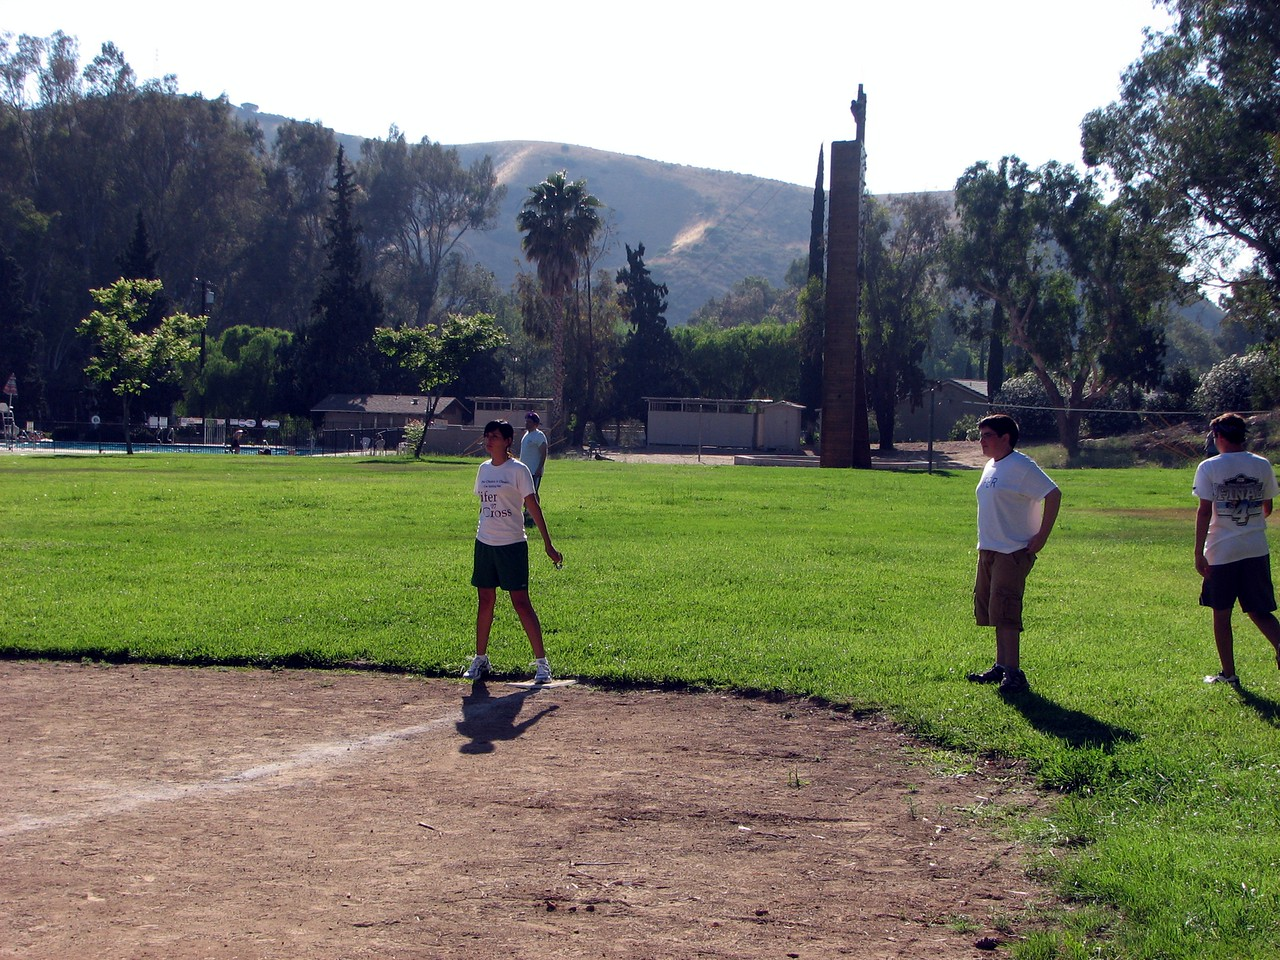 Amber (girlfriend of the brother of the bride) holds first base for Team Fifer